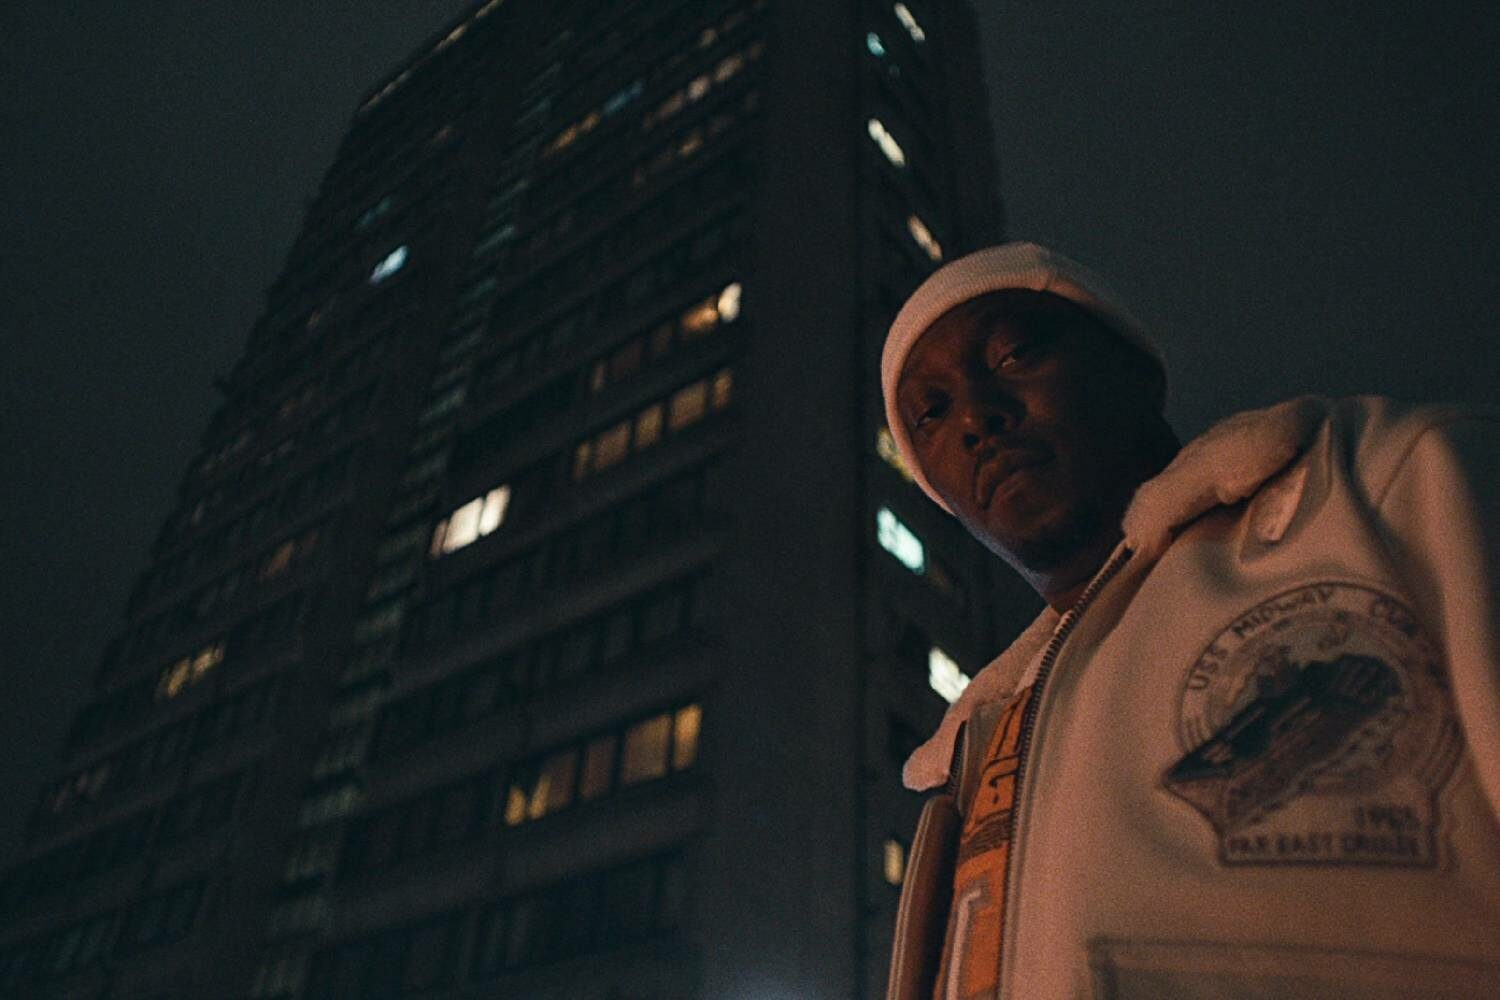 Dizzee Rascal shares new video for 'Quality'